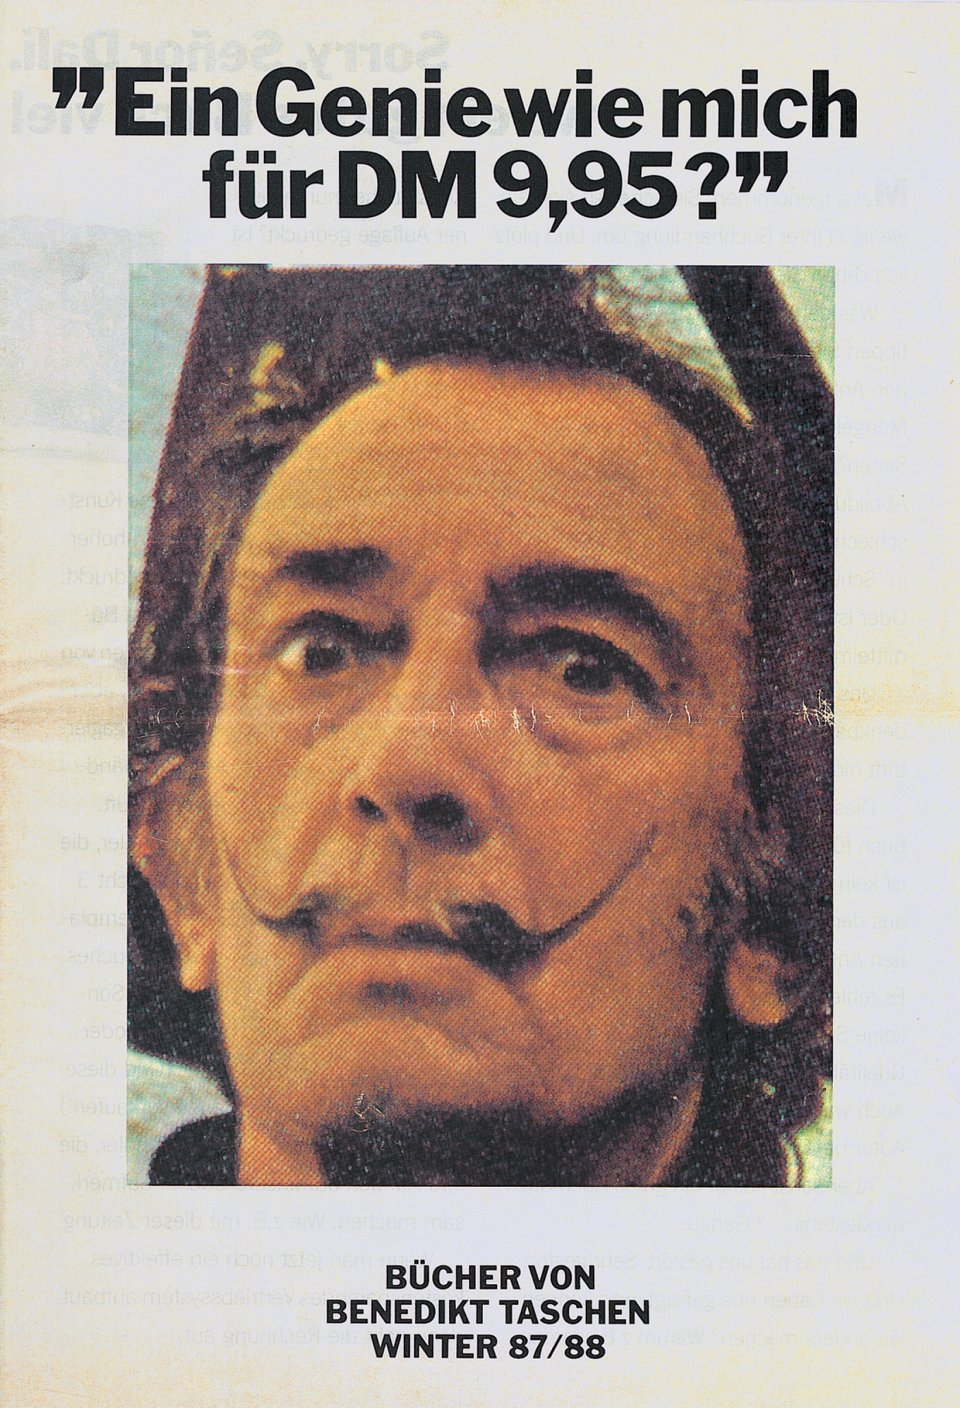 "On the 1987 catalog, Salvador Dalí happily complains ""A genius like me for just DM 9.95?"""